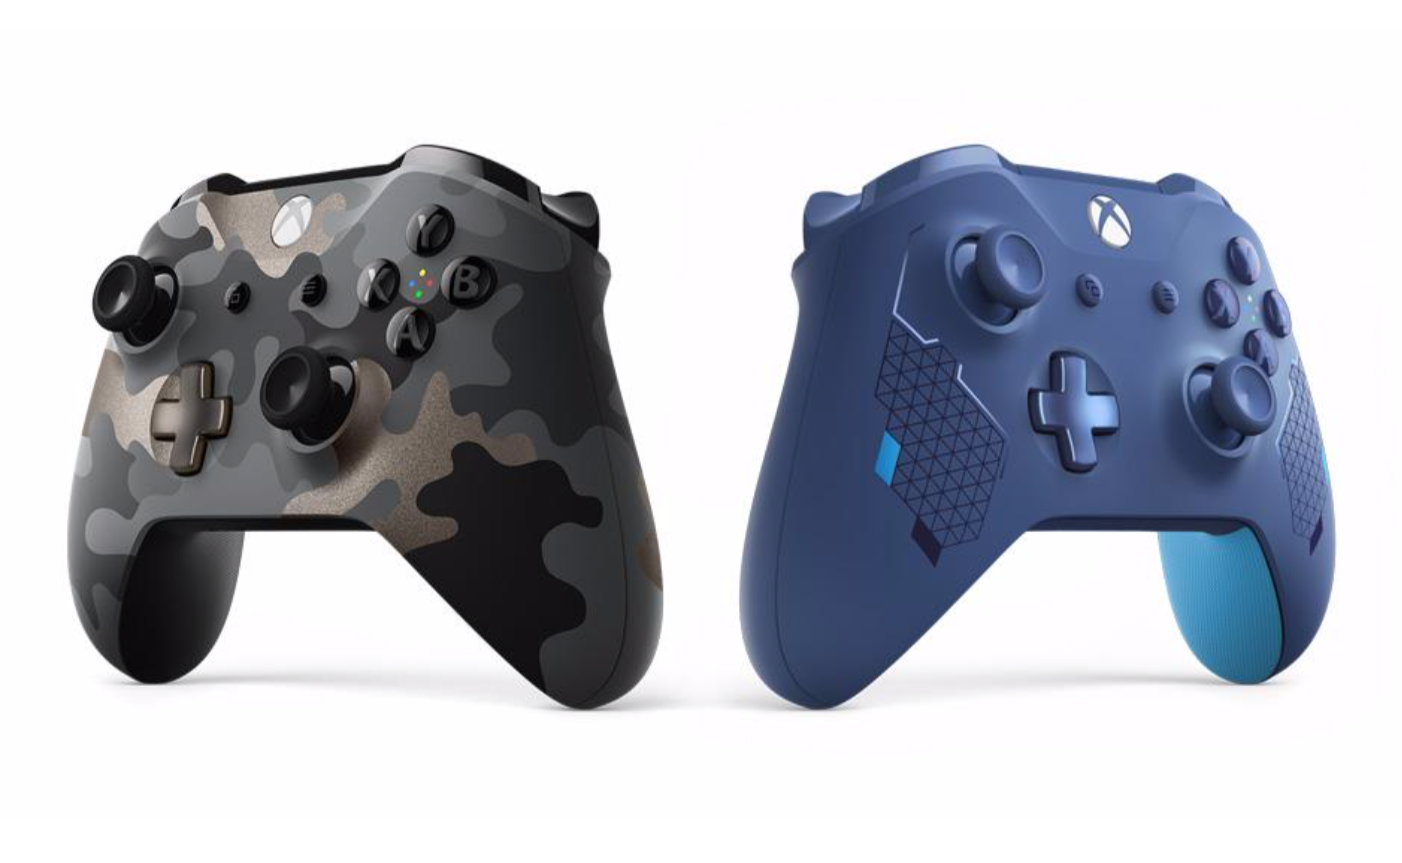 Product shot of the two new Xbox One controller styles, Night Ops Camo and Sport Blue